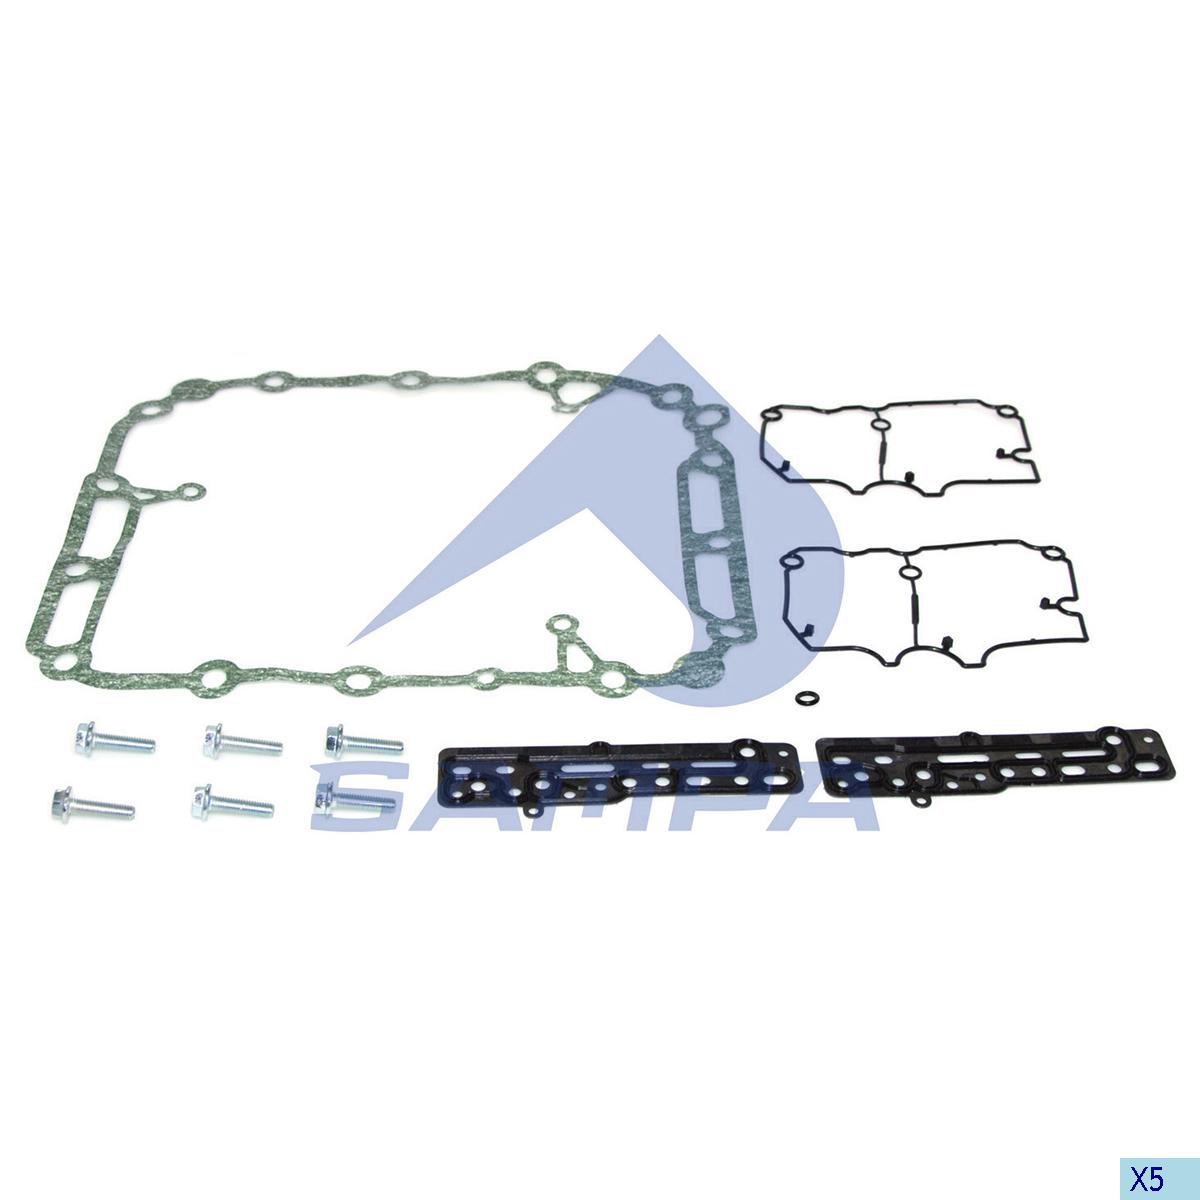 Gasket Kit, Gear Selector Housing, Volvo, Gear Box